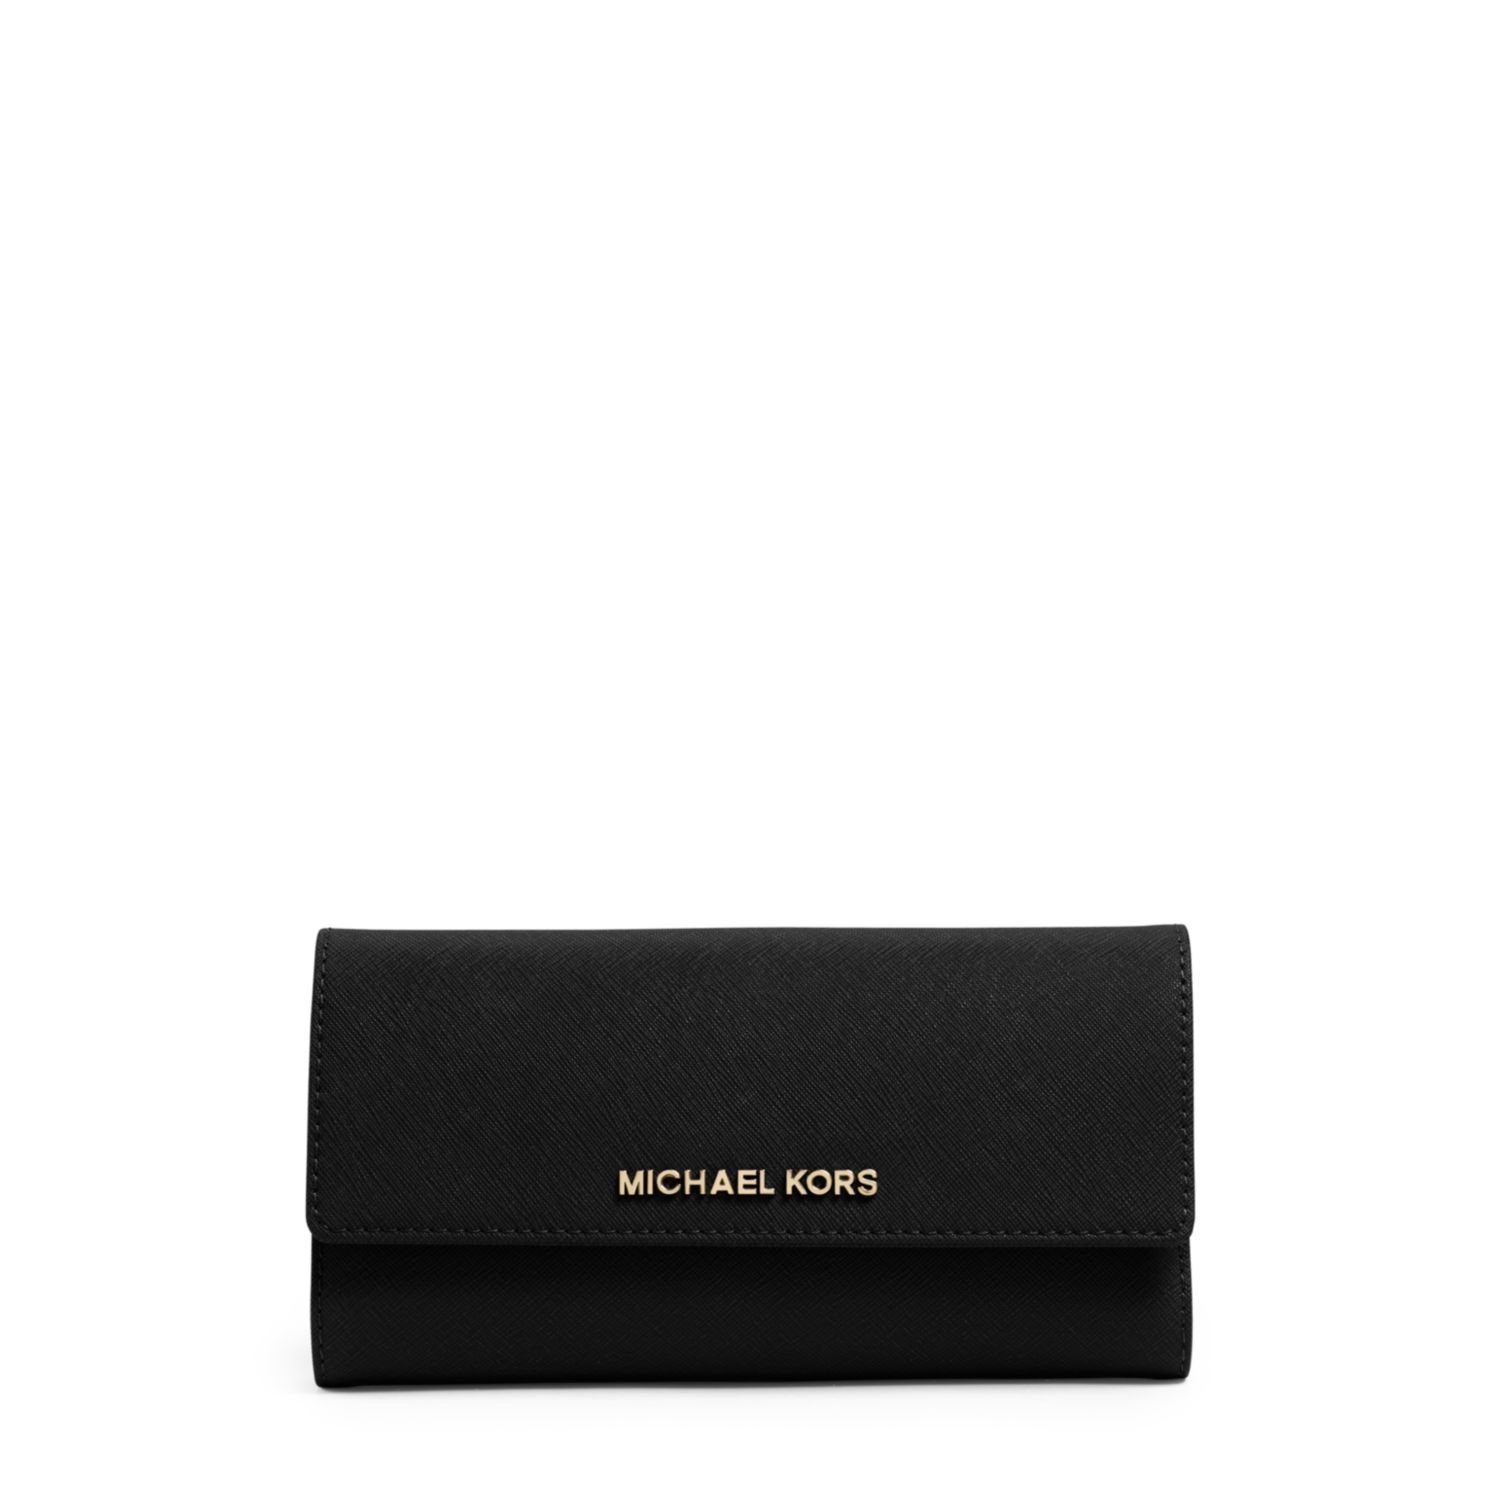 b63b6b693307 Michael Kors Jet Set Travel Saffiano Leather Checkbook Wallet in ...